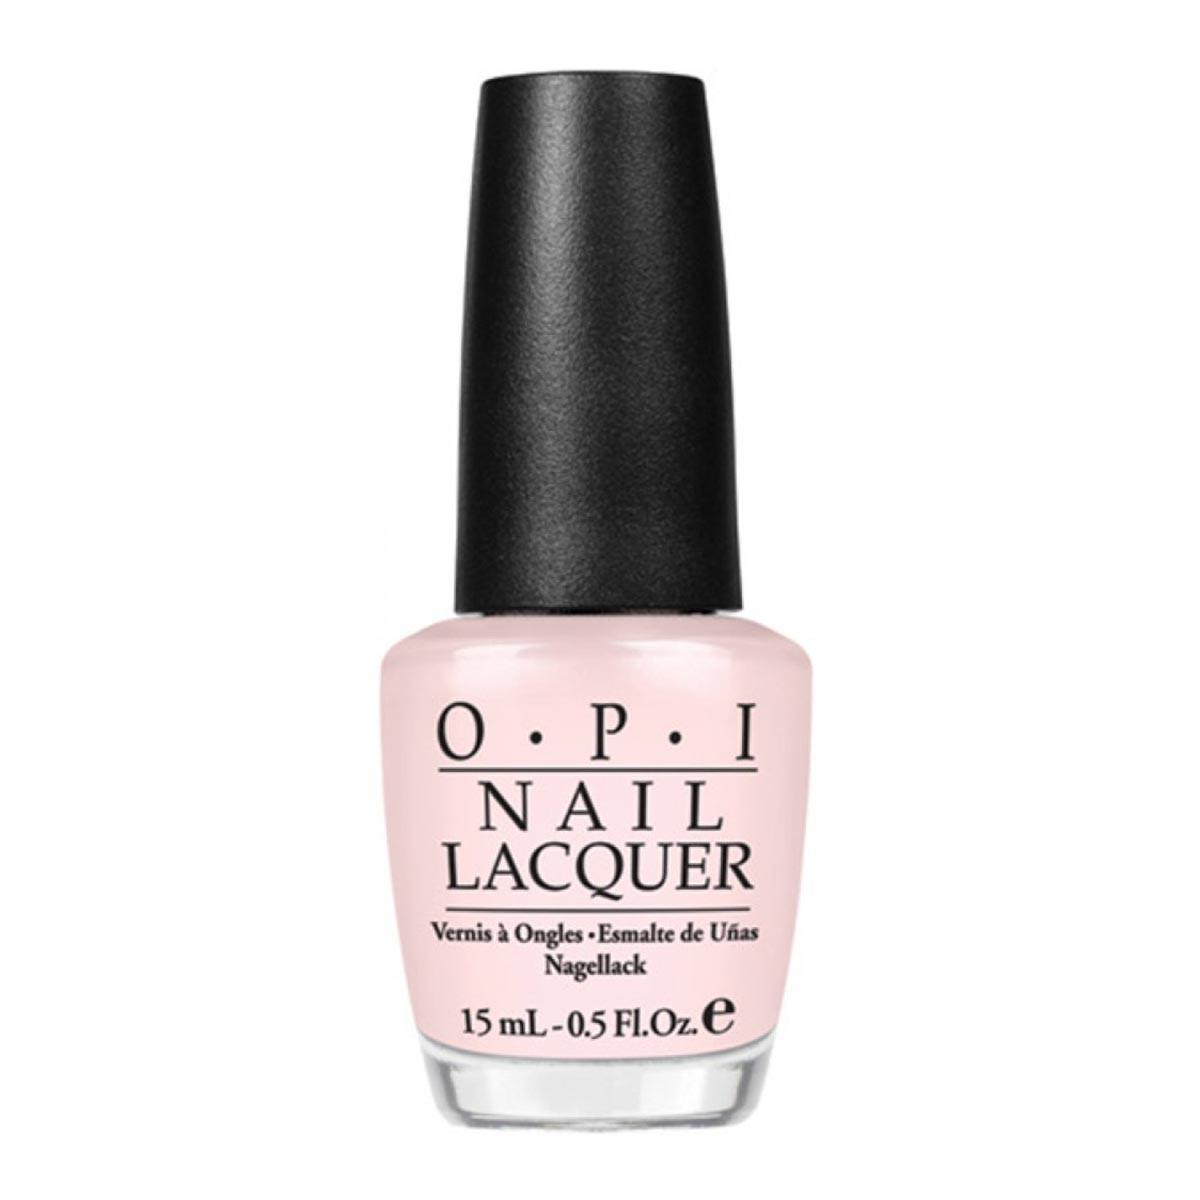 Opi fragrances Nail Lacquer Nlf28 Step Right Up!